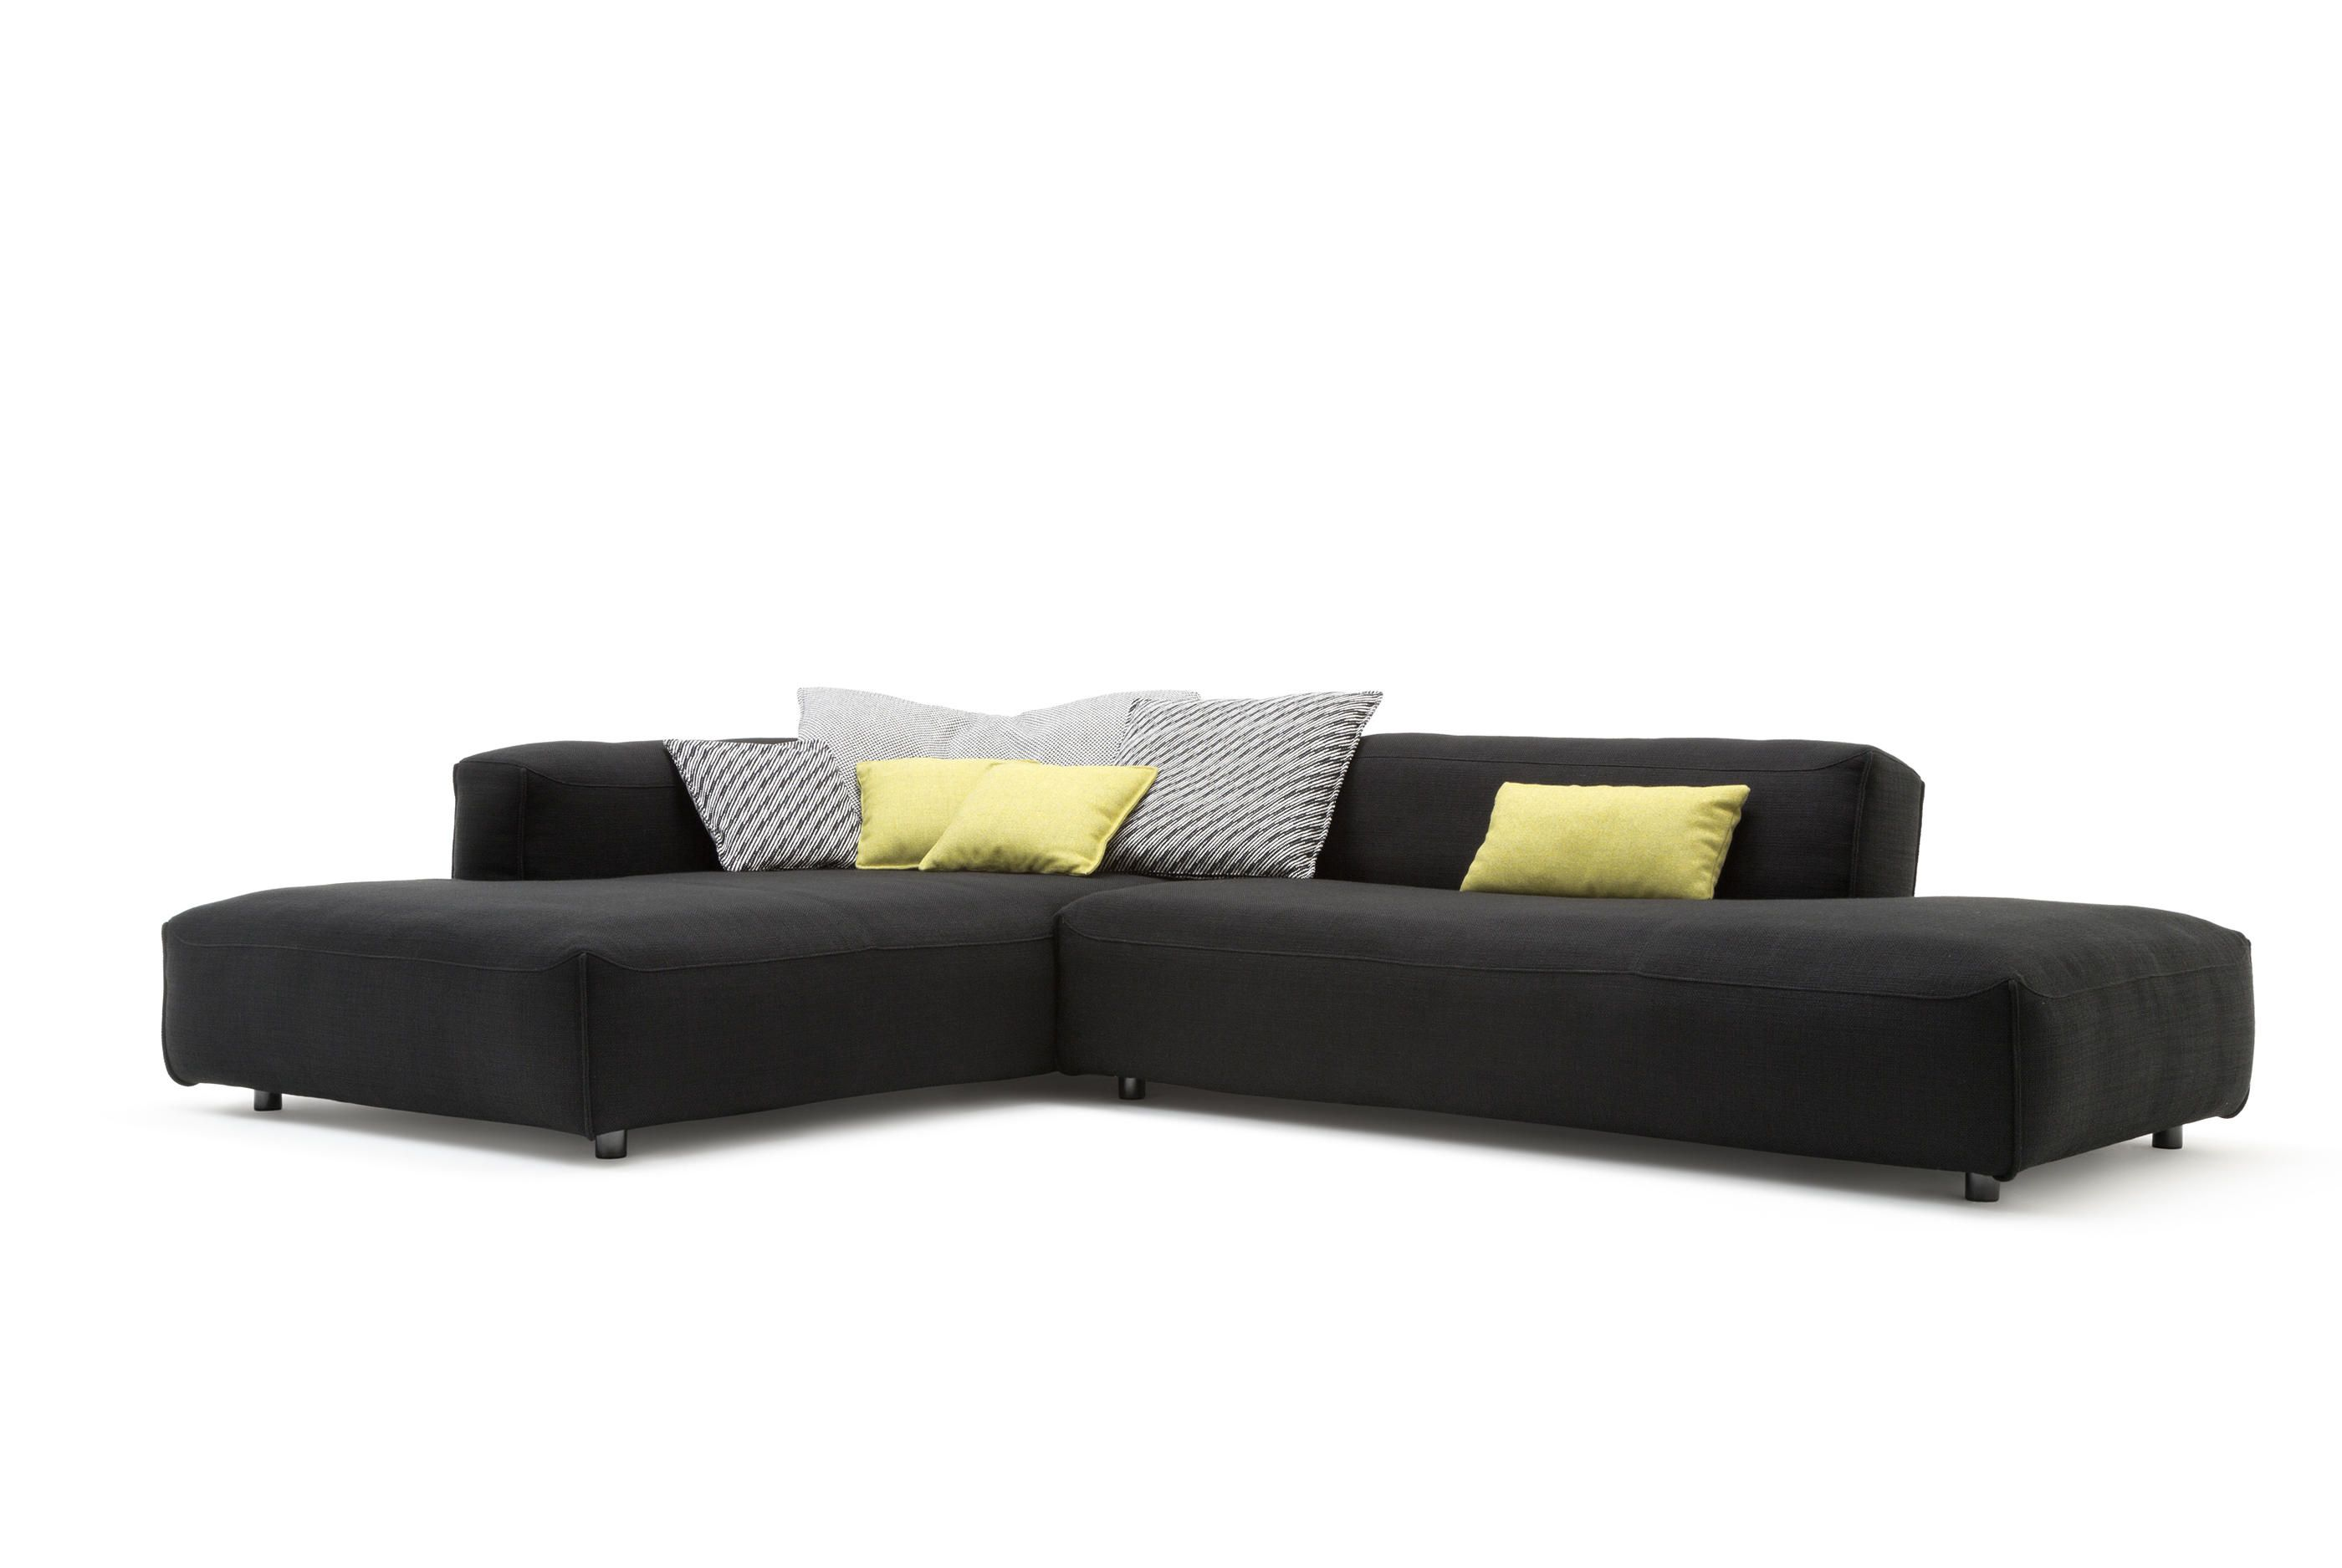 Rolf Benz Sofa Ecksofa Rolf Benz Sofa Trendy Click Here To See A Larger Picture With